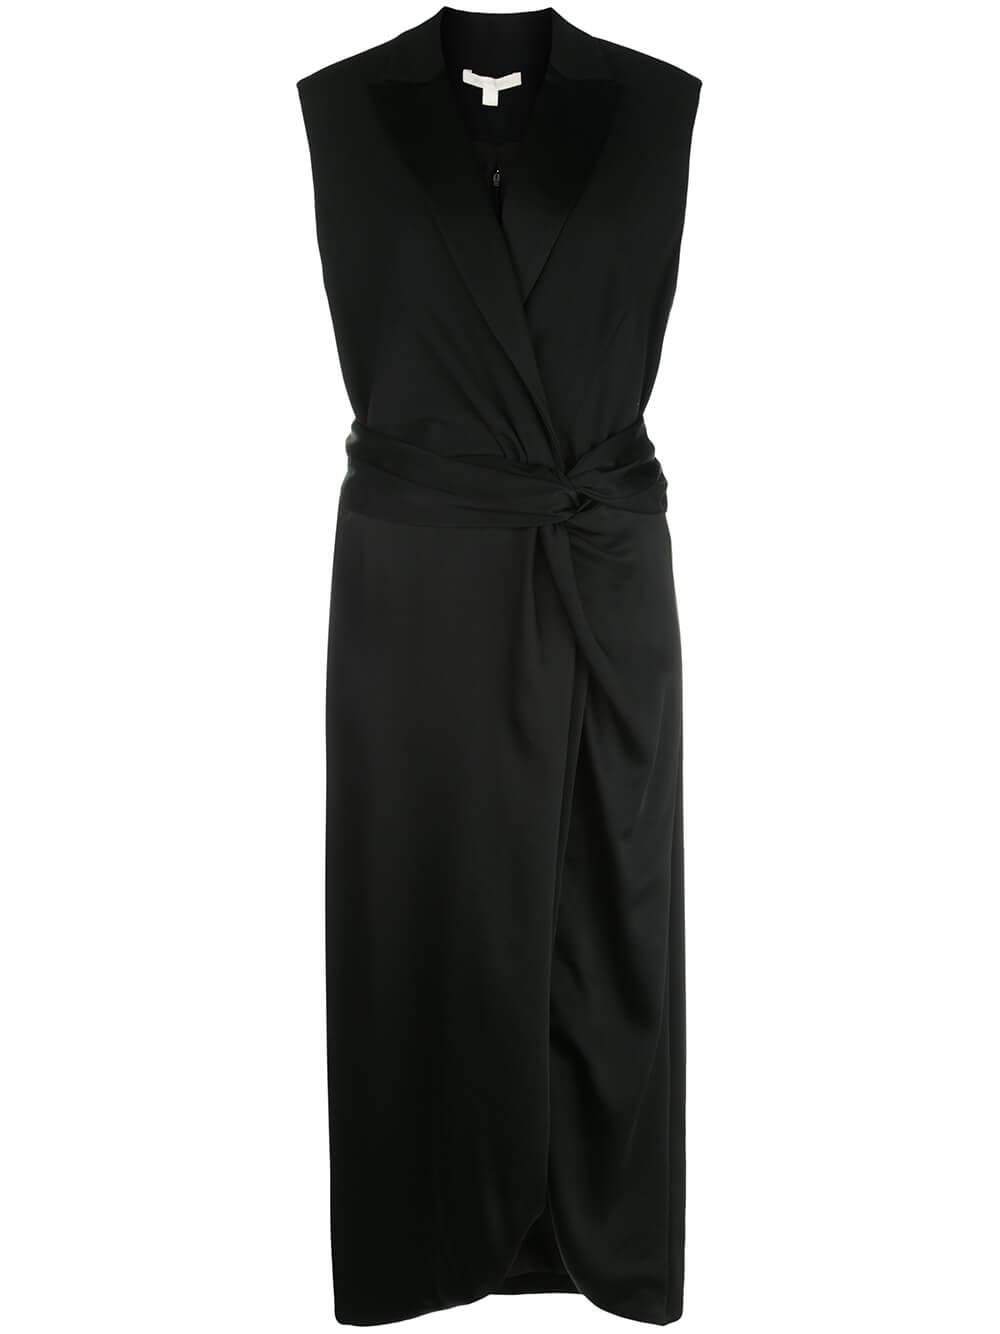 Sleeveless Luxe Wool Satin Combo Twist Dress Item # 120-1017-F